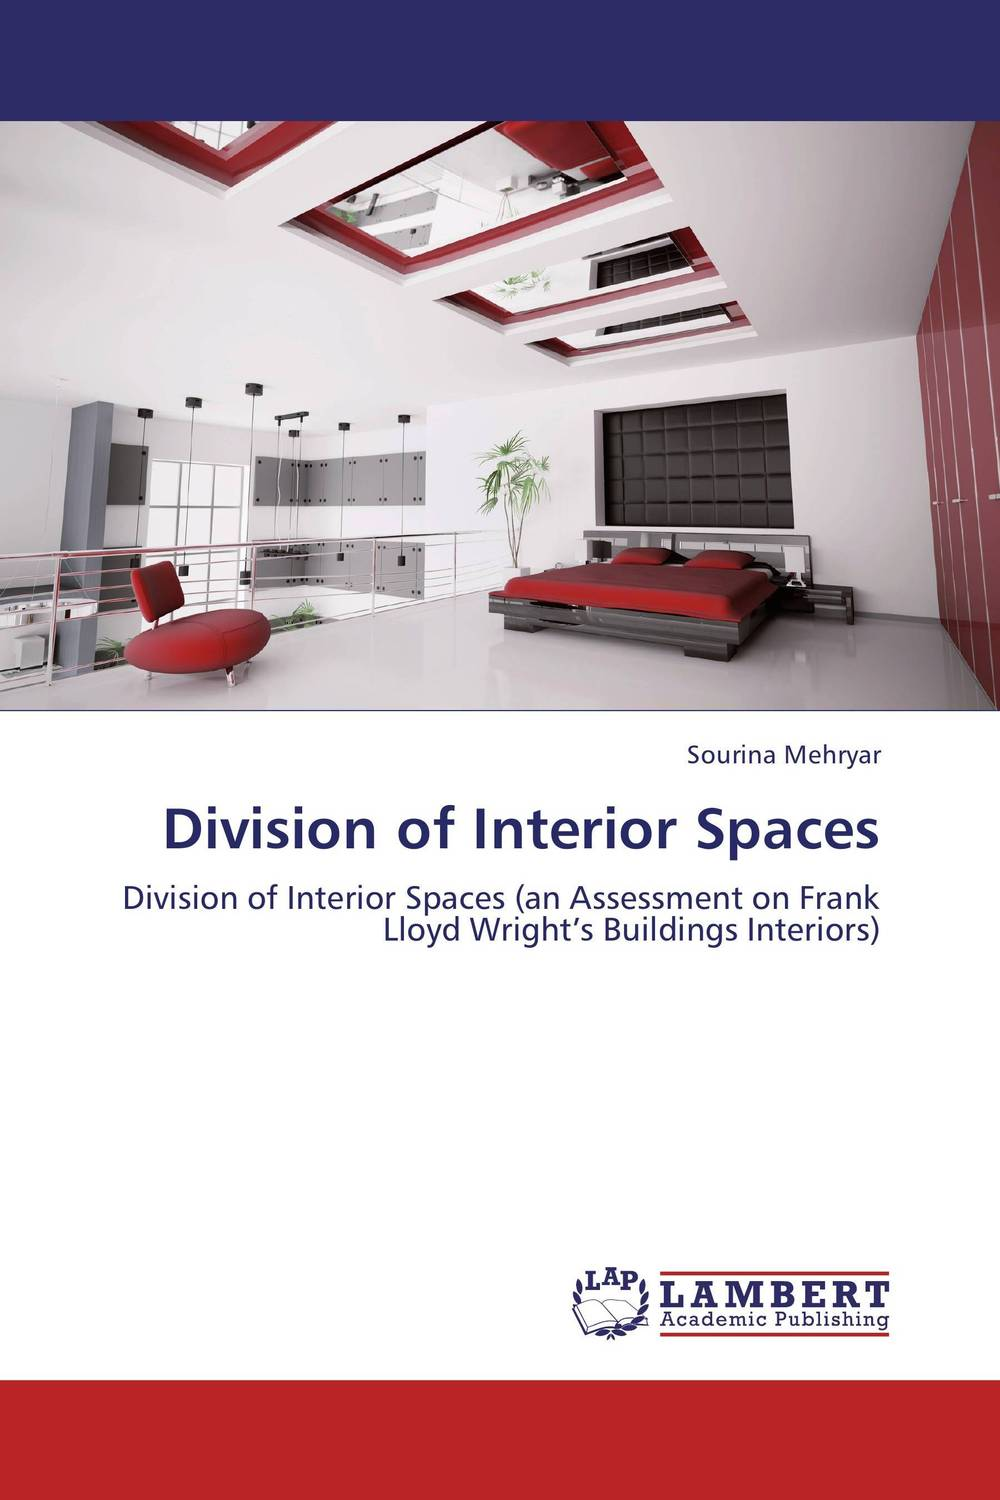 Division of Interior Spaces venture to the interior